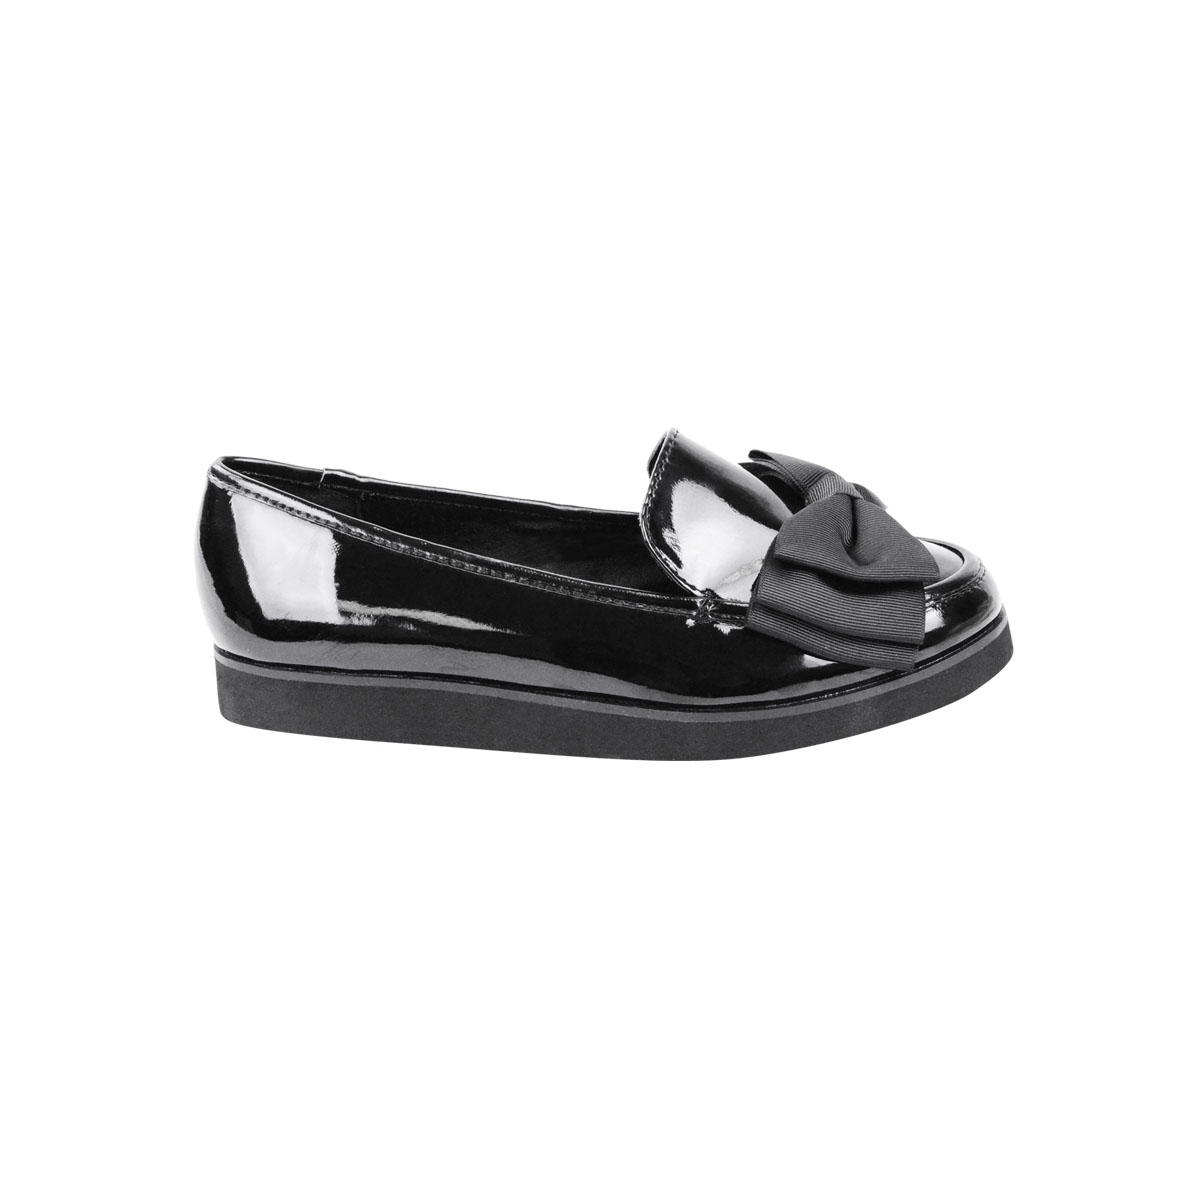 WOMENS-LADIES-GIRLS-NEW-FLAT-OFFICE-SCHOOL-SHOES-SMART-FORMAL-LOAFERS-PUMPS-SIZE thumbnail 6